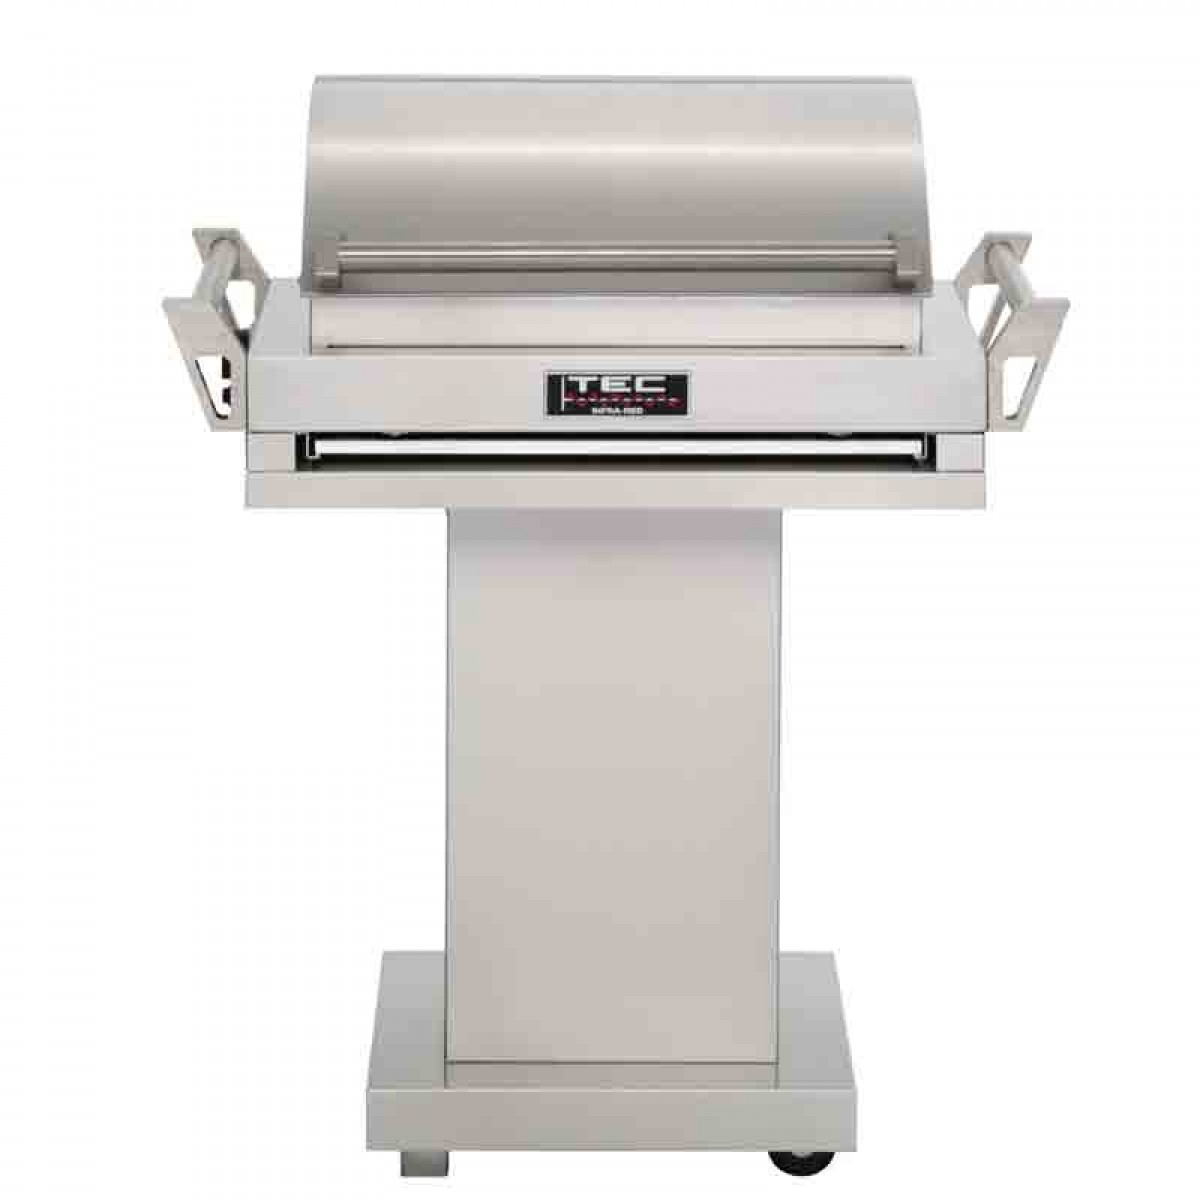 ... TEC G SPORT FR Series Infrared Barbecue Gas Grill ...